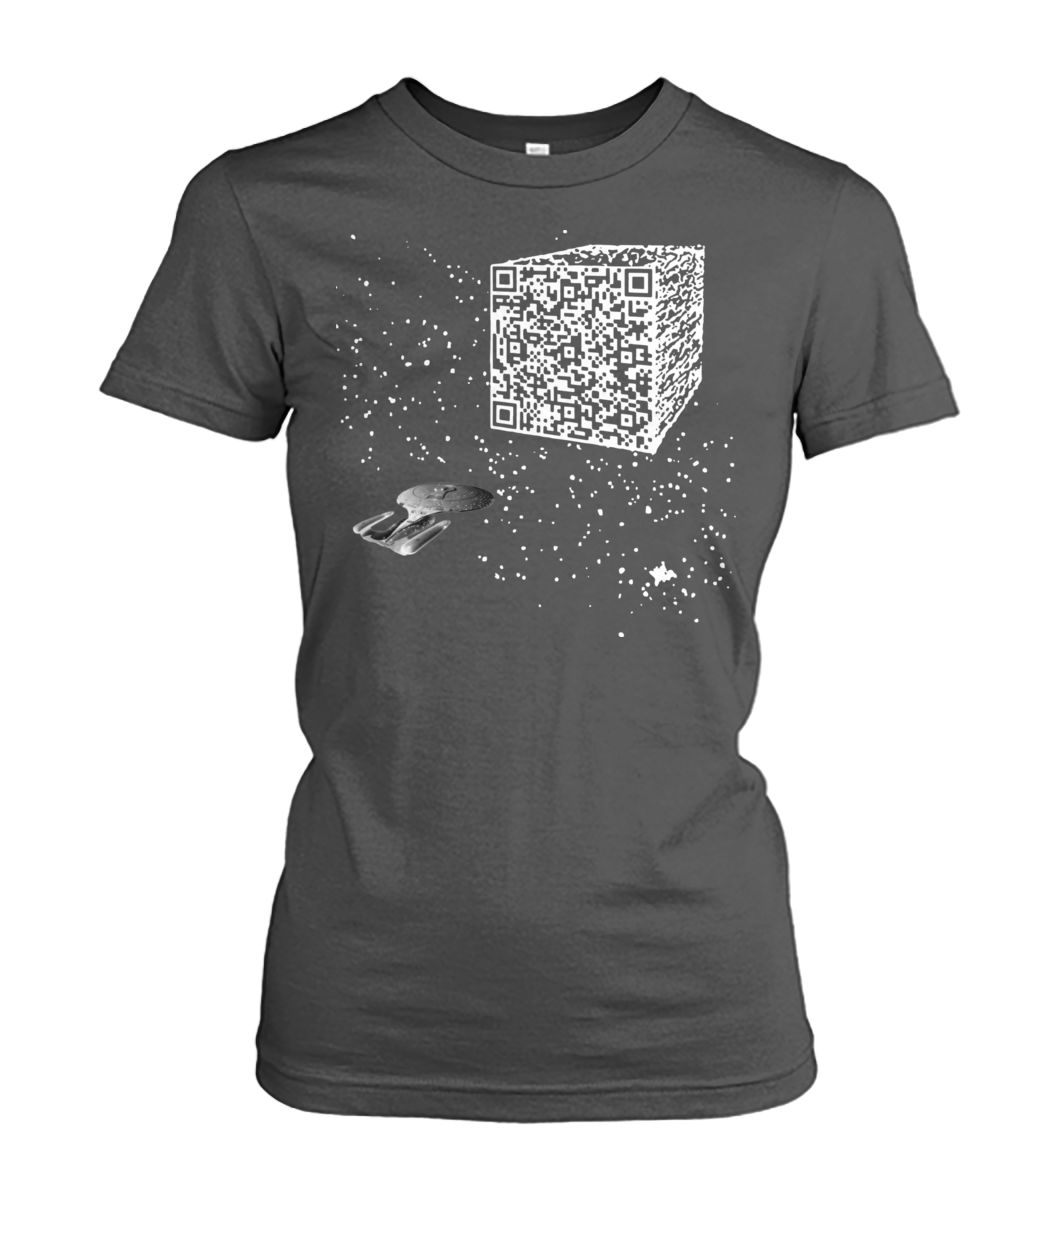 We are the borg resistance is futile space QR code women's crew tee